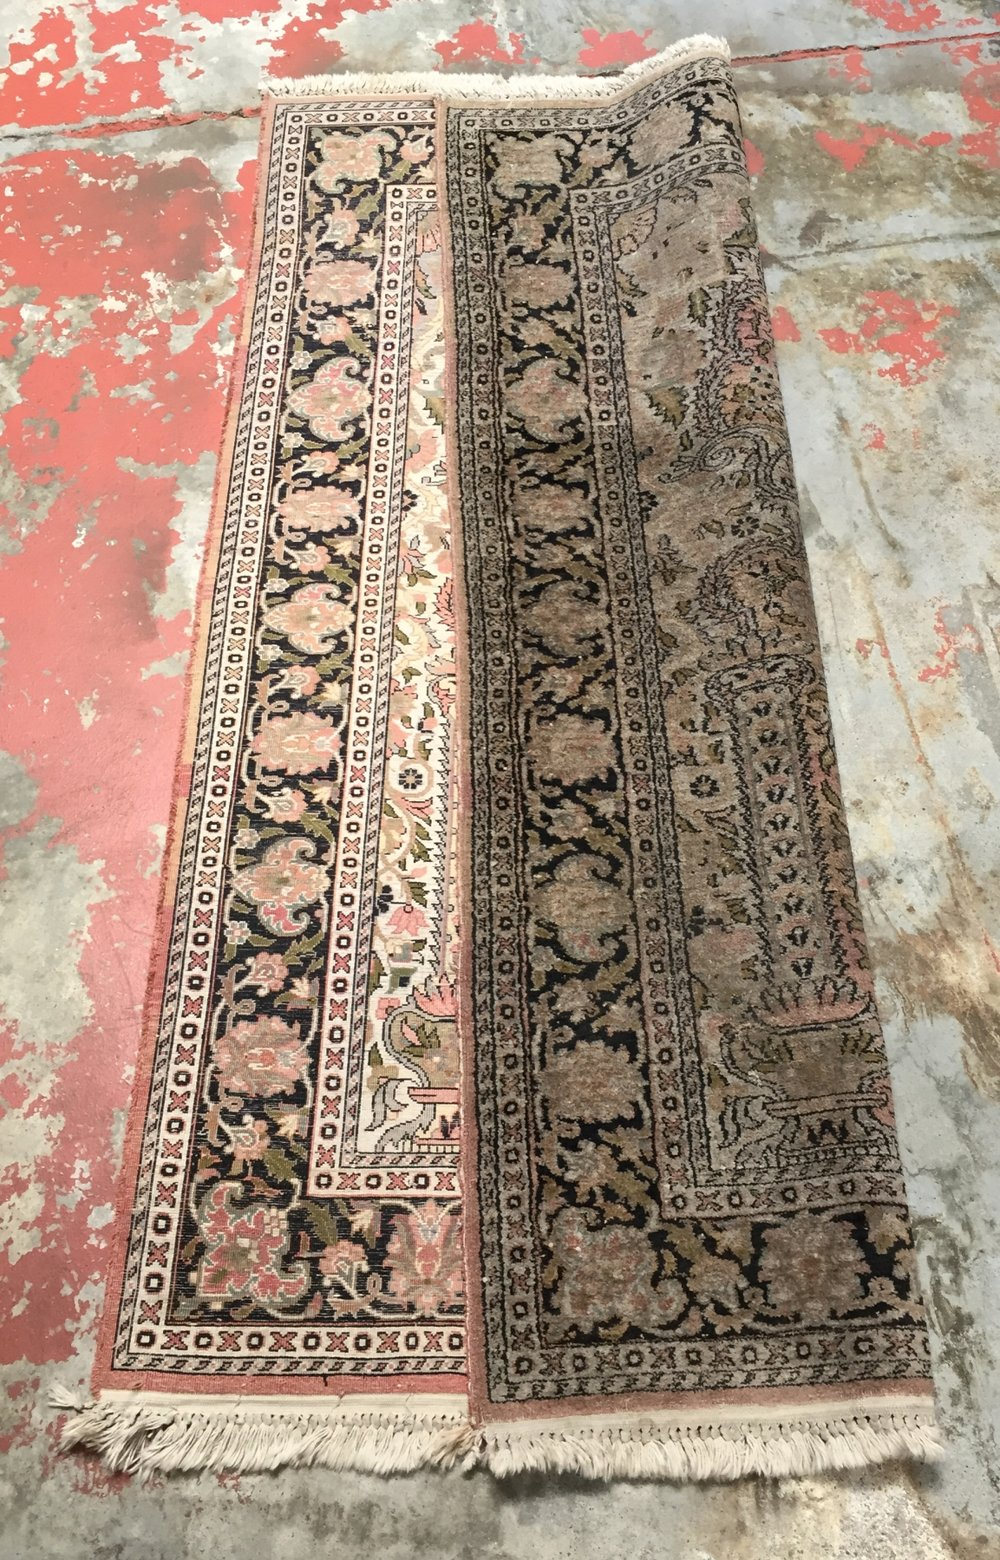 Kashmir Rug Before Cleaning